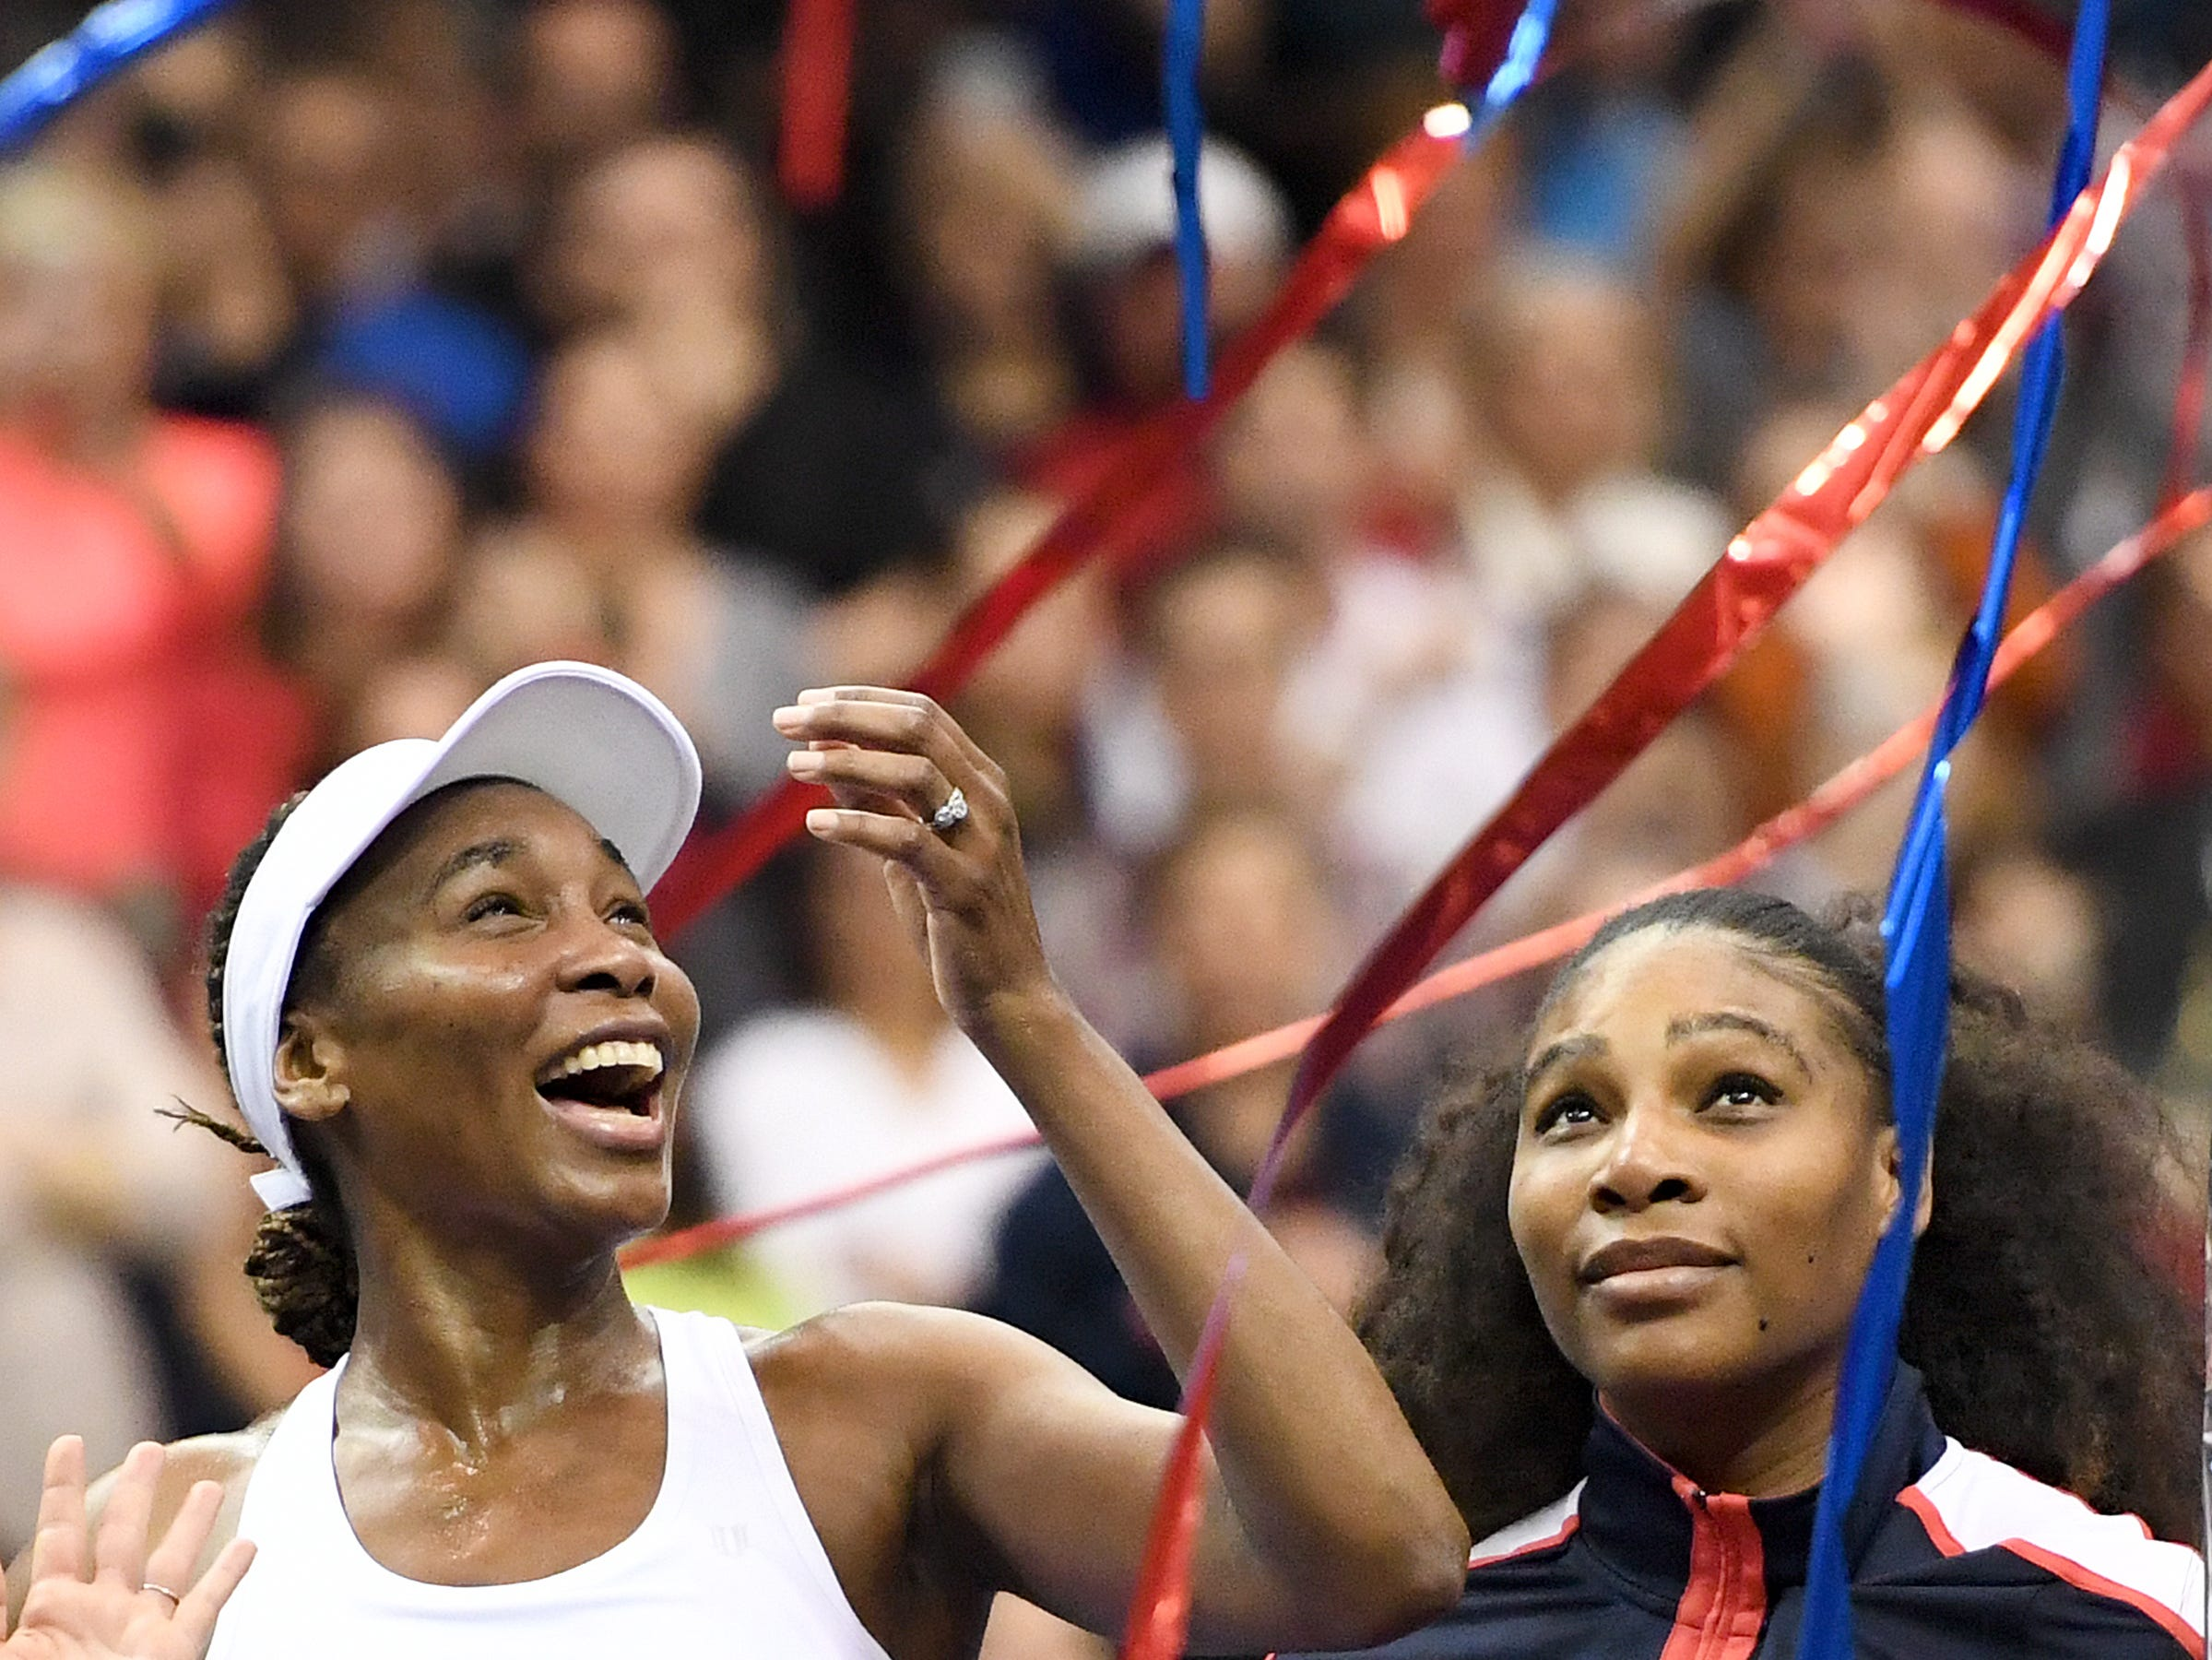 Venus Williams stands with her sister, Serena, after she defeated the Netherlands' Richel Hogenkamp clinching a win for the United States in the first round of the 2018 Fed Cup at the U.S. Cellular Center on Sunday, Feb. 11, 2018.